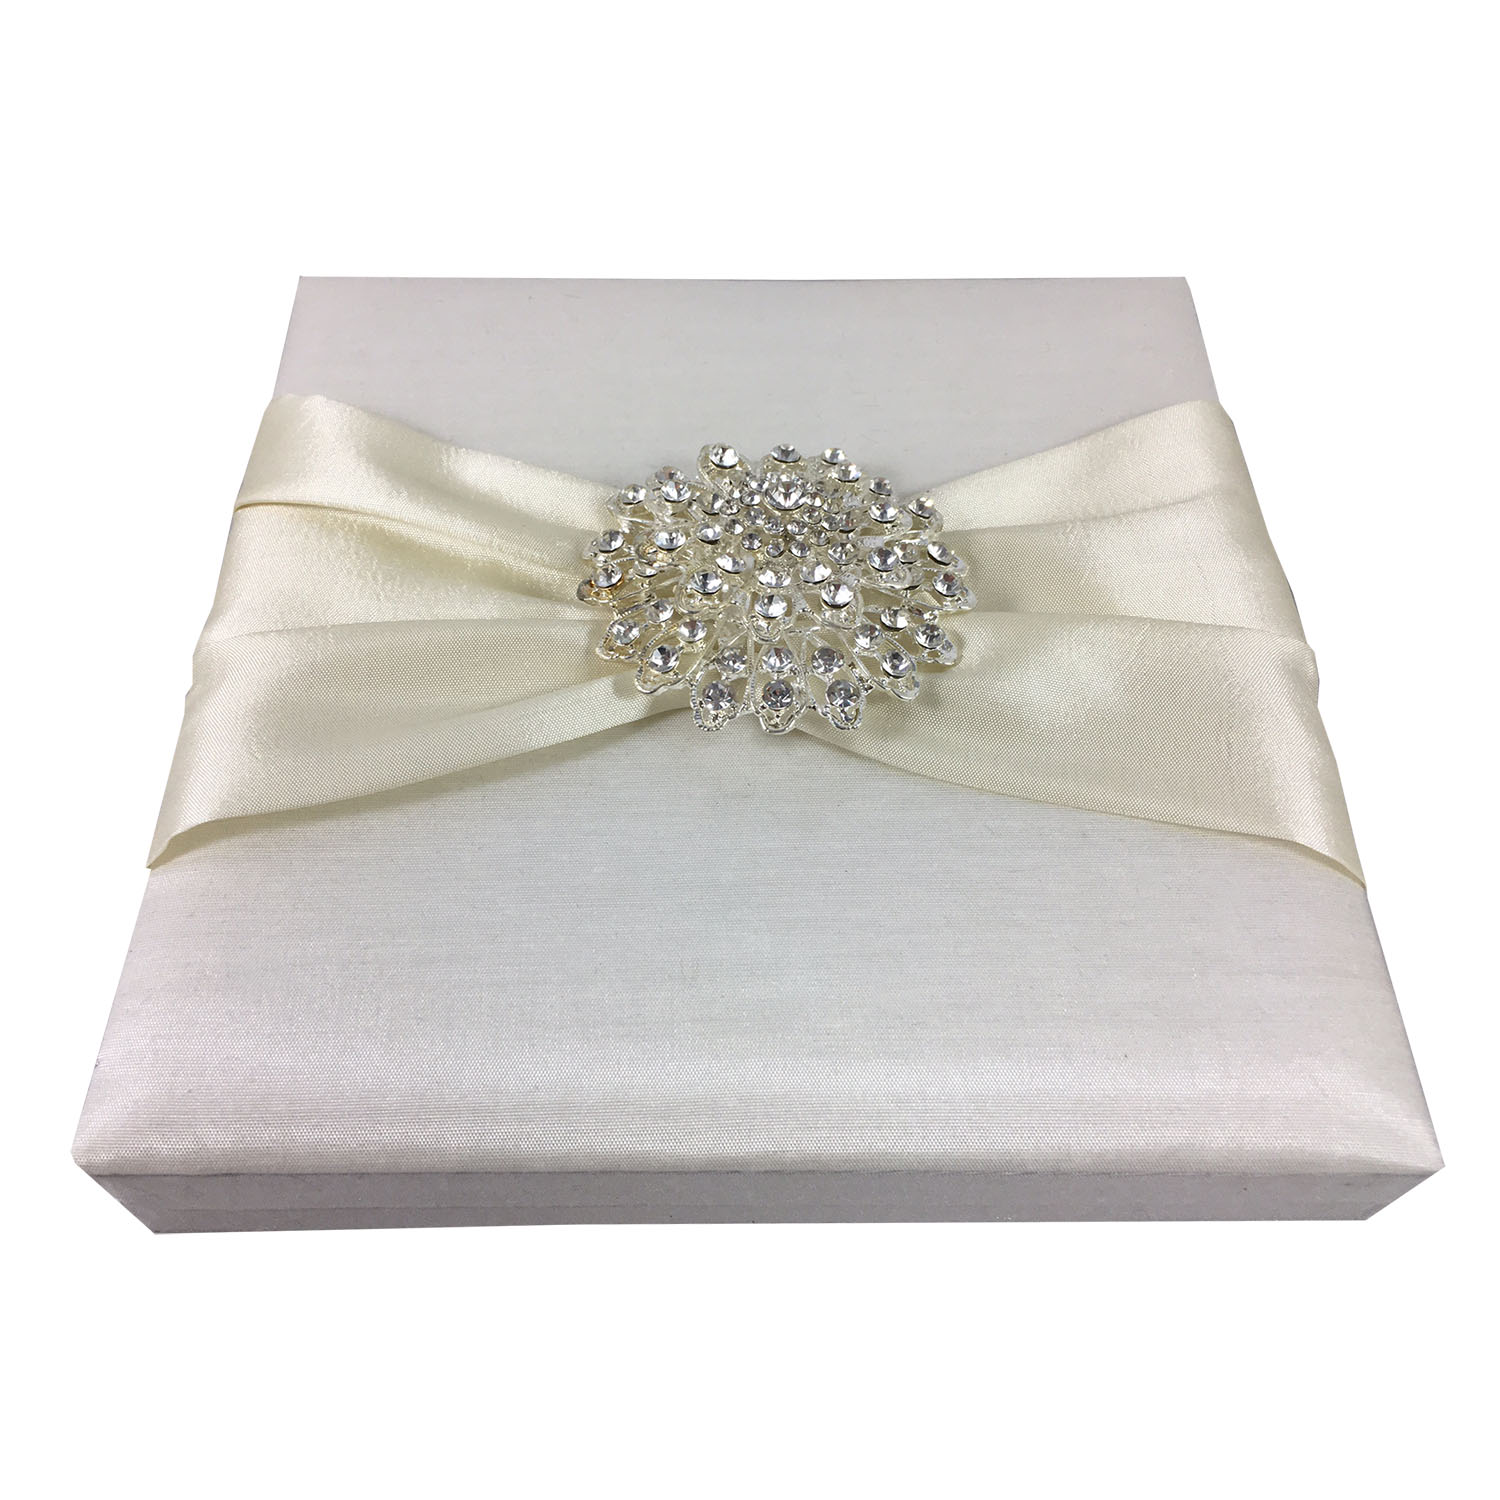 ivory boxed wedding invitation with large crystal flower brooch